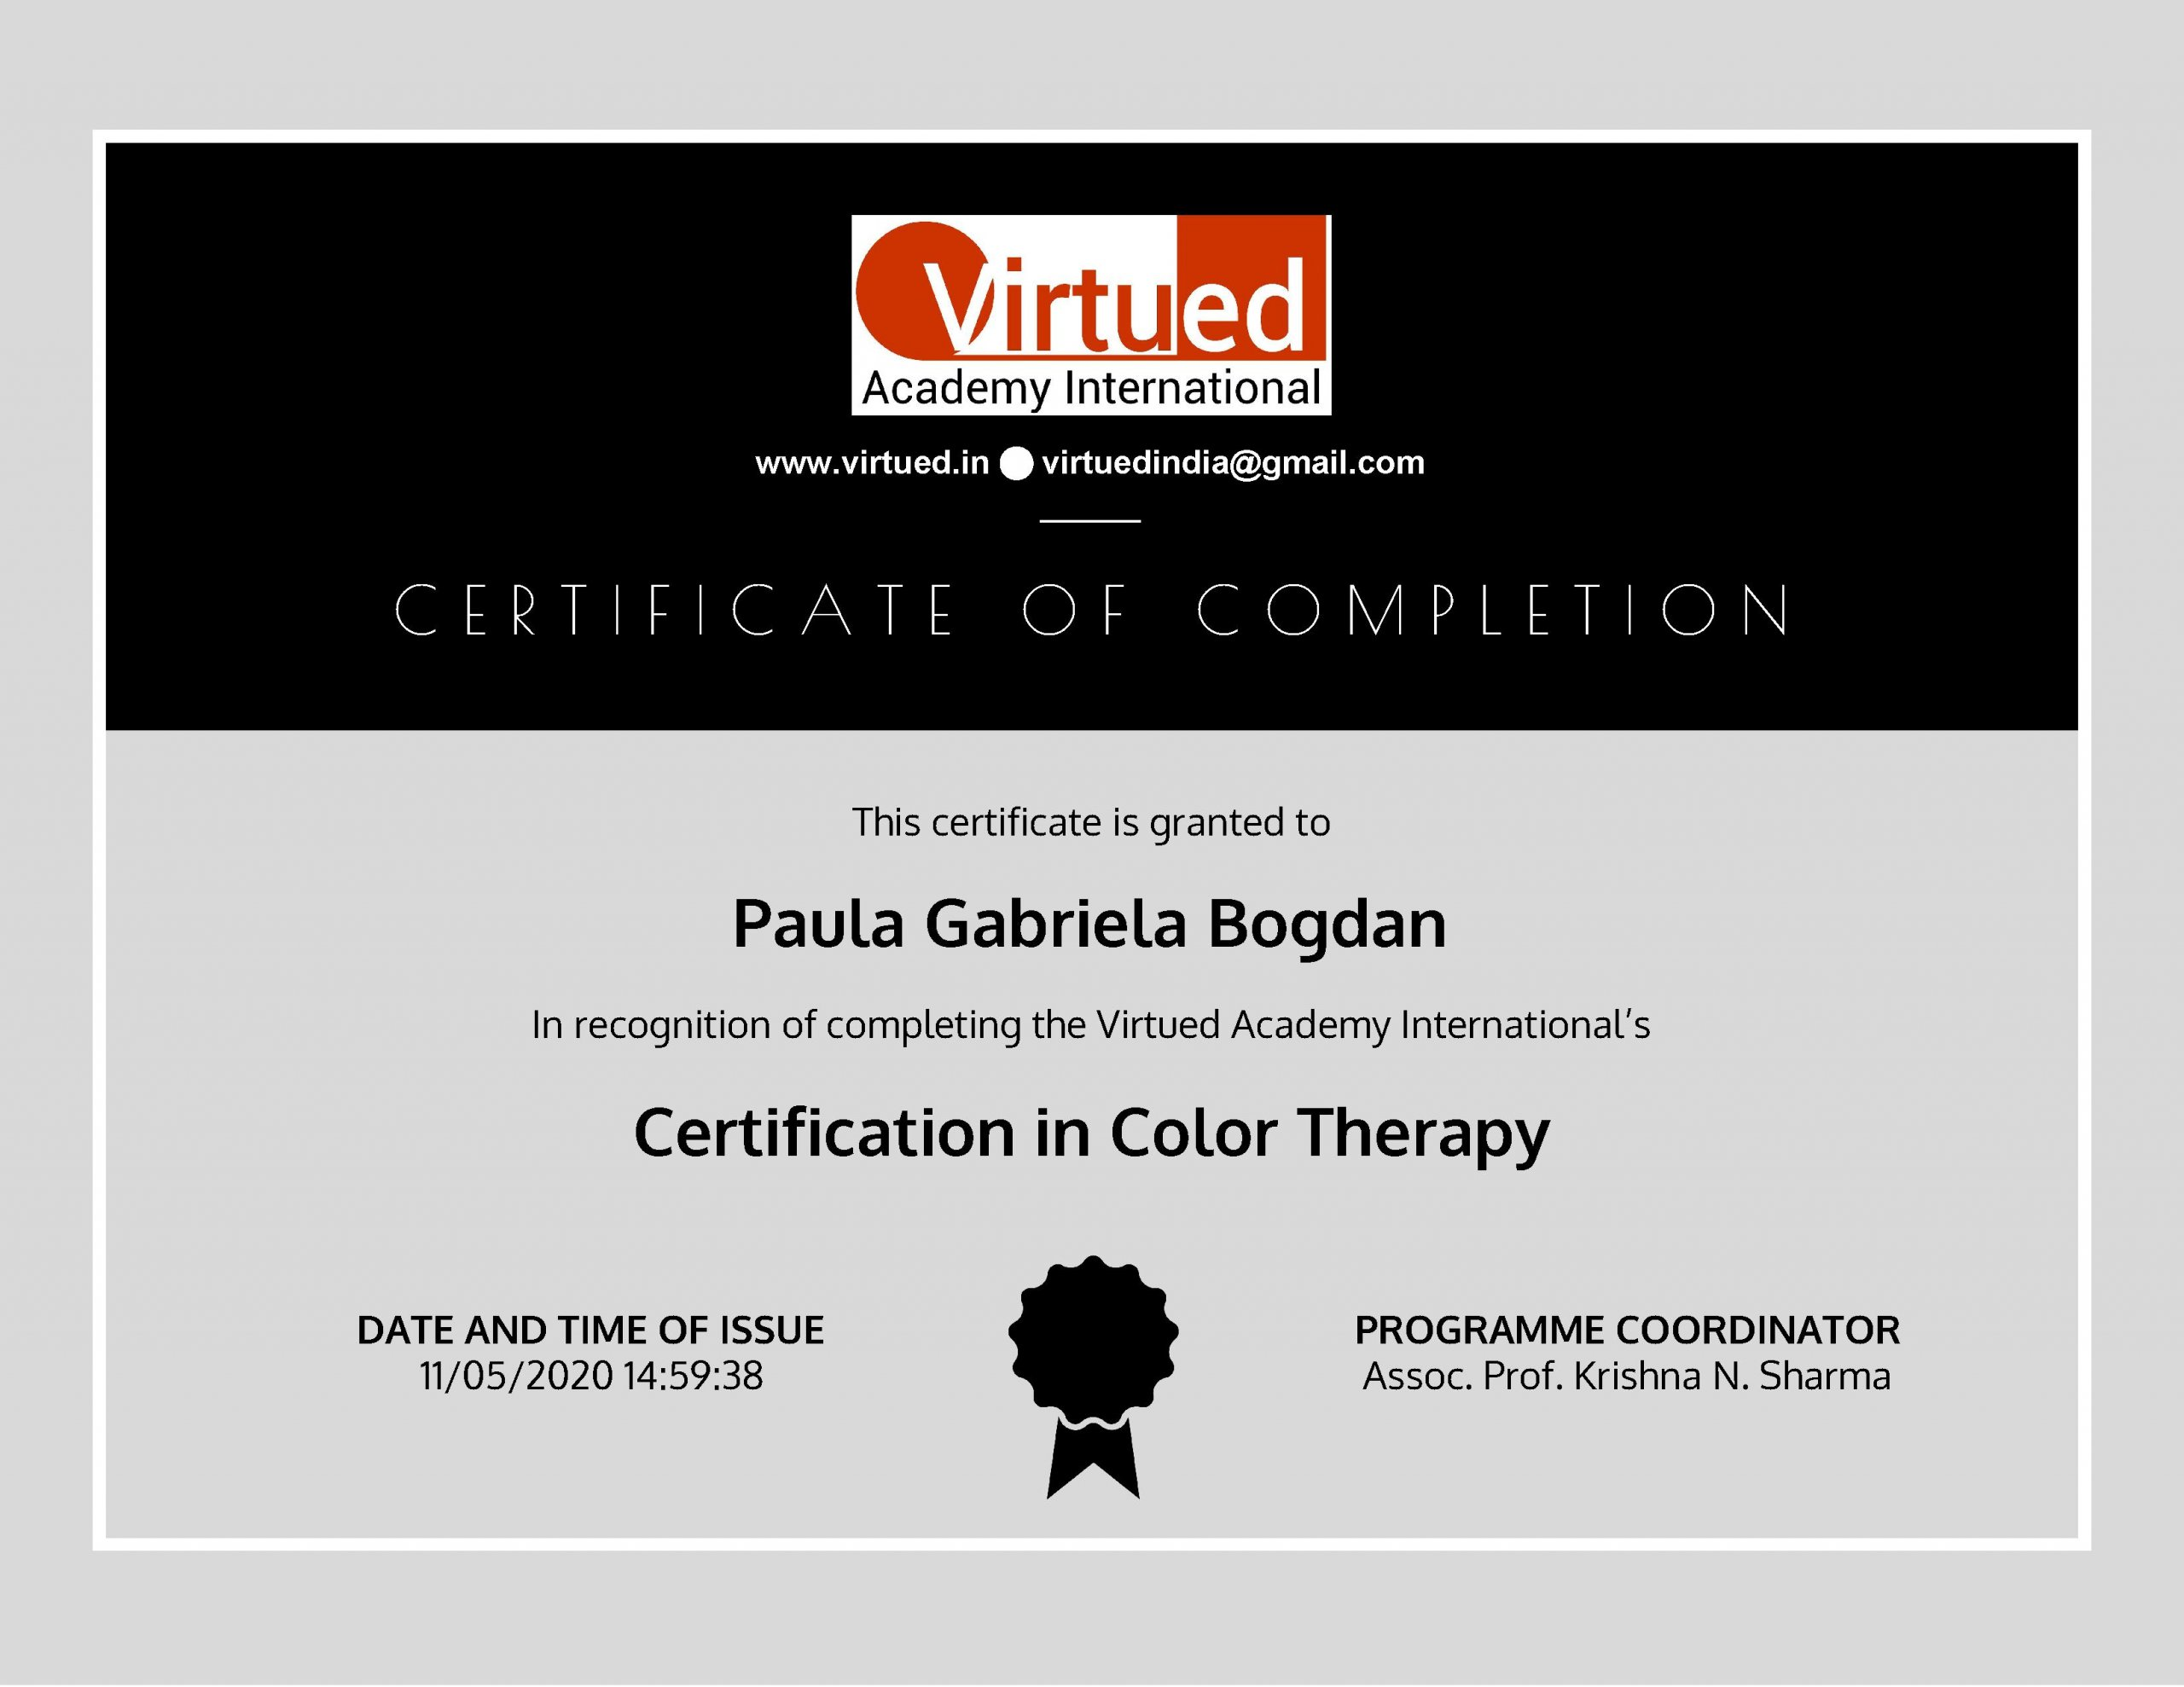 Certification in Color Therapy